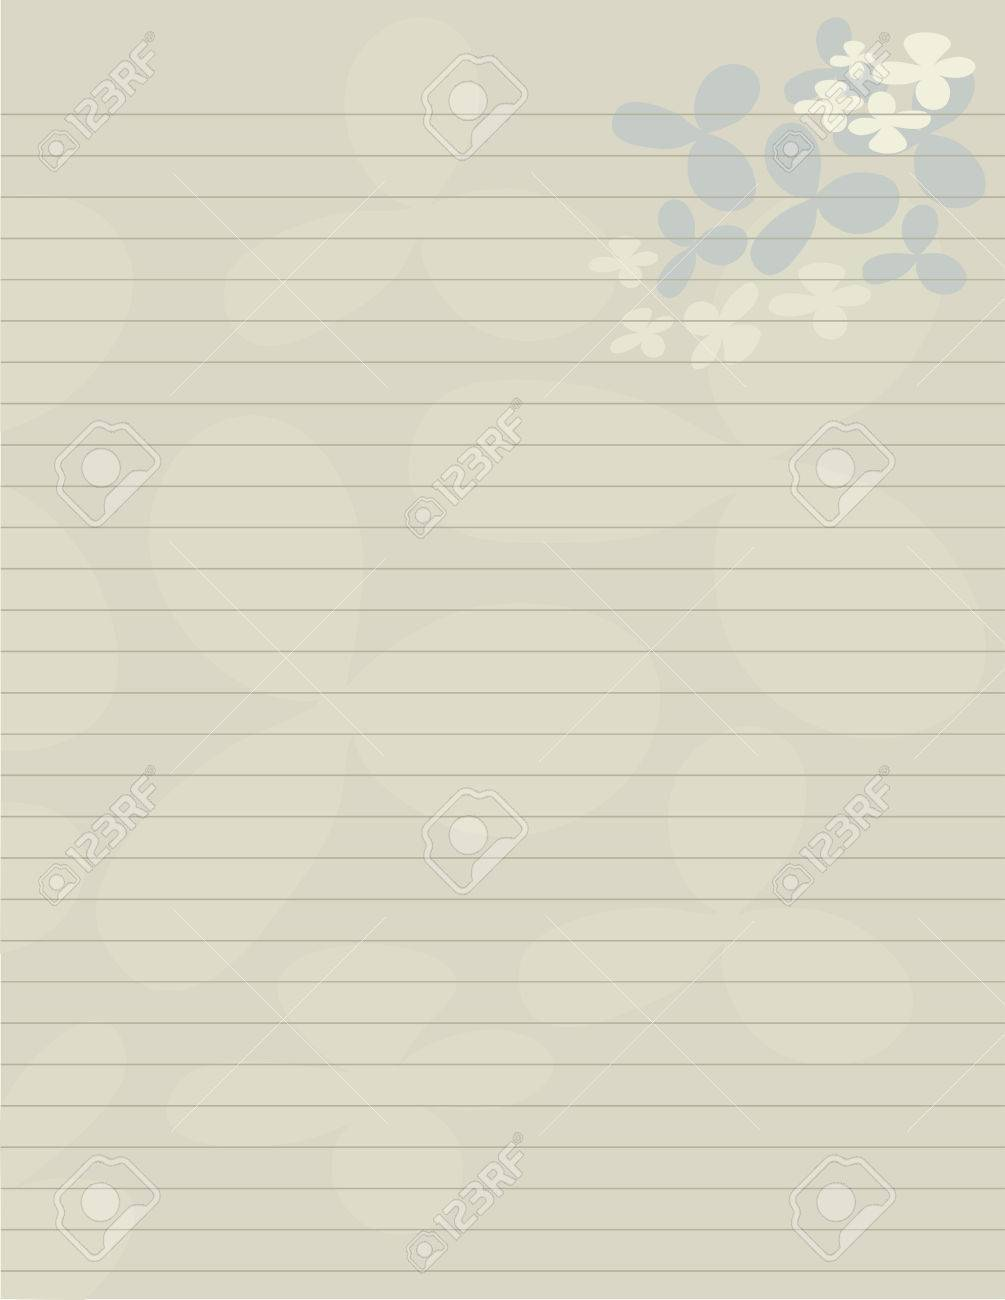 Lined Paper Stationery With Flowery Pedals In Earth Tones Royalty – Lined Stationary Paper